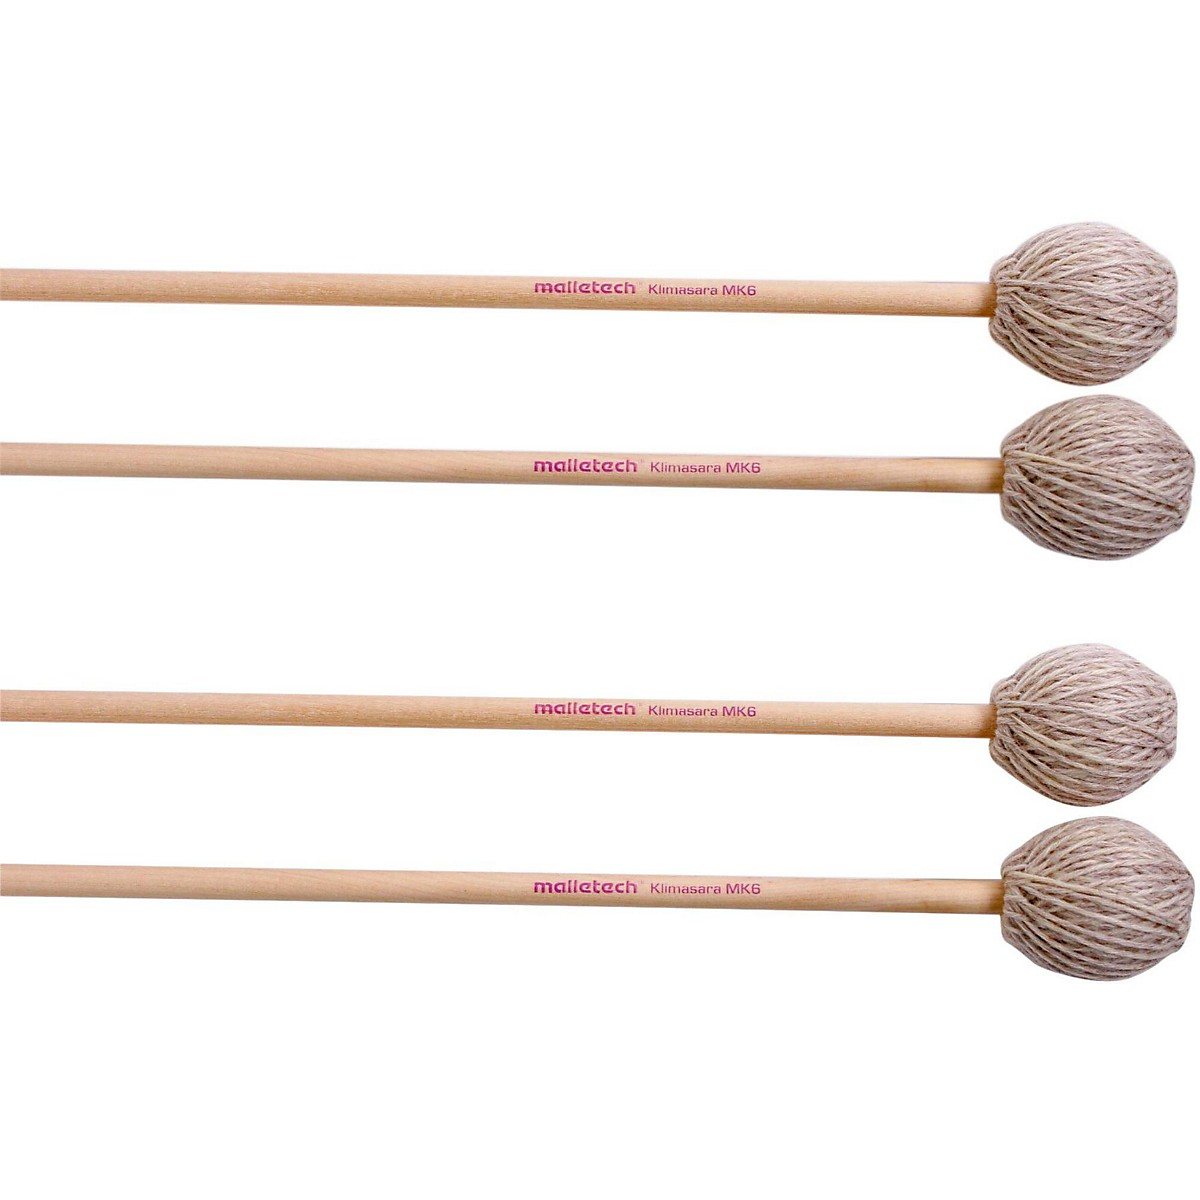 Malletech Klimasara Marimba Mallets Set of 4 (2 Matched Pairs)